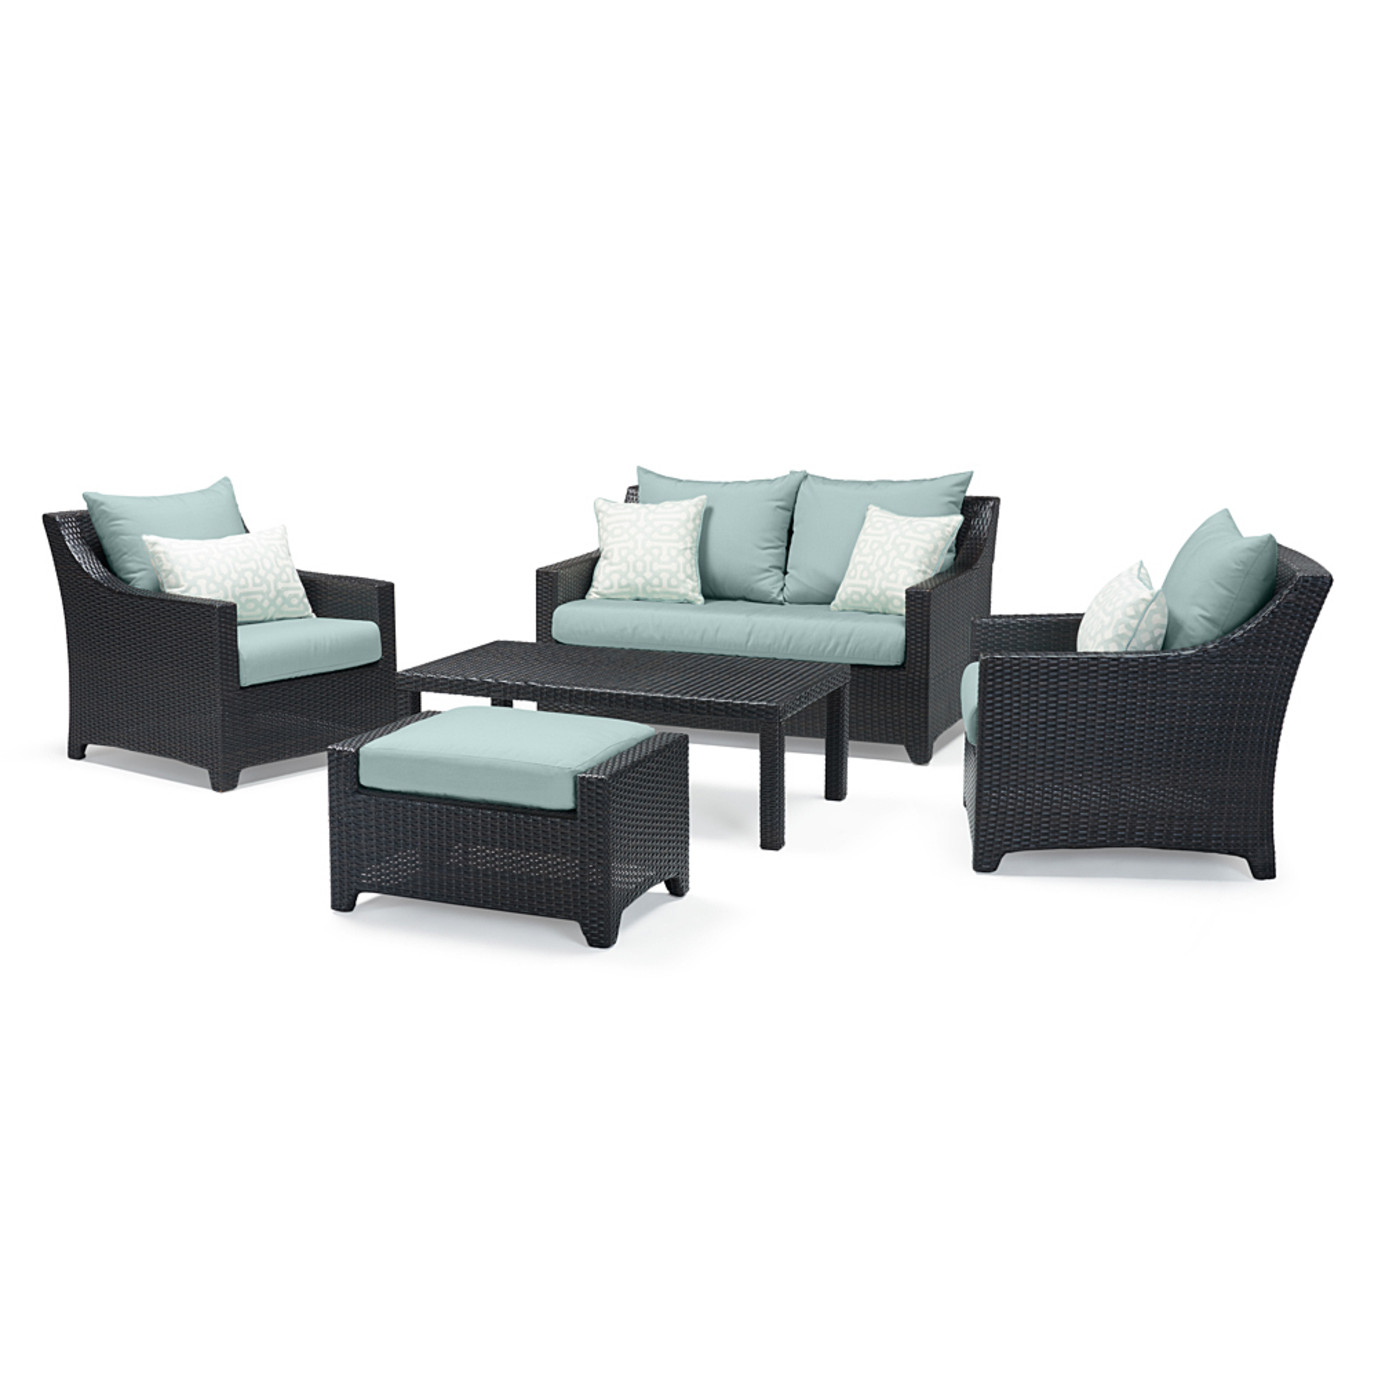 Deco™ 5pc Love & Club Seating Set - Spa Blue